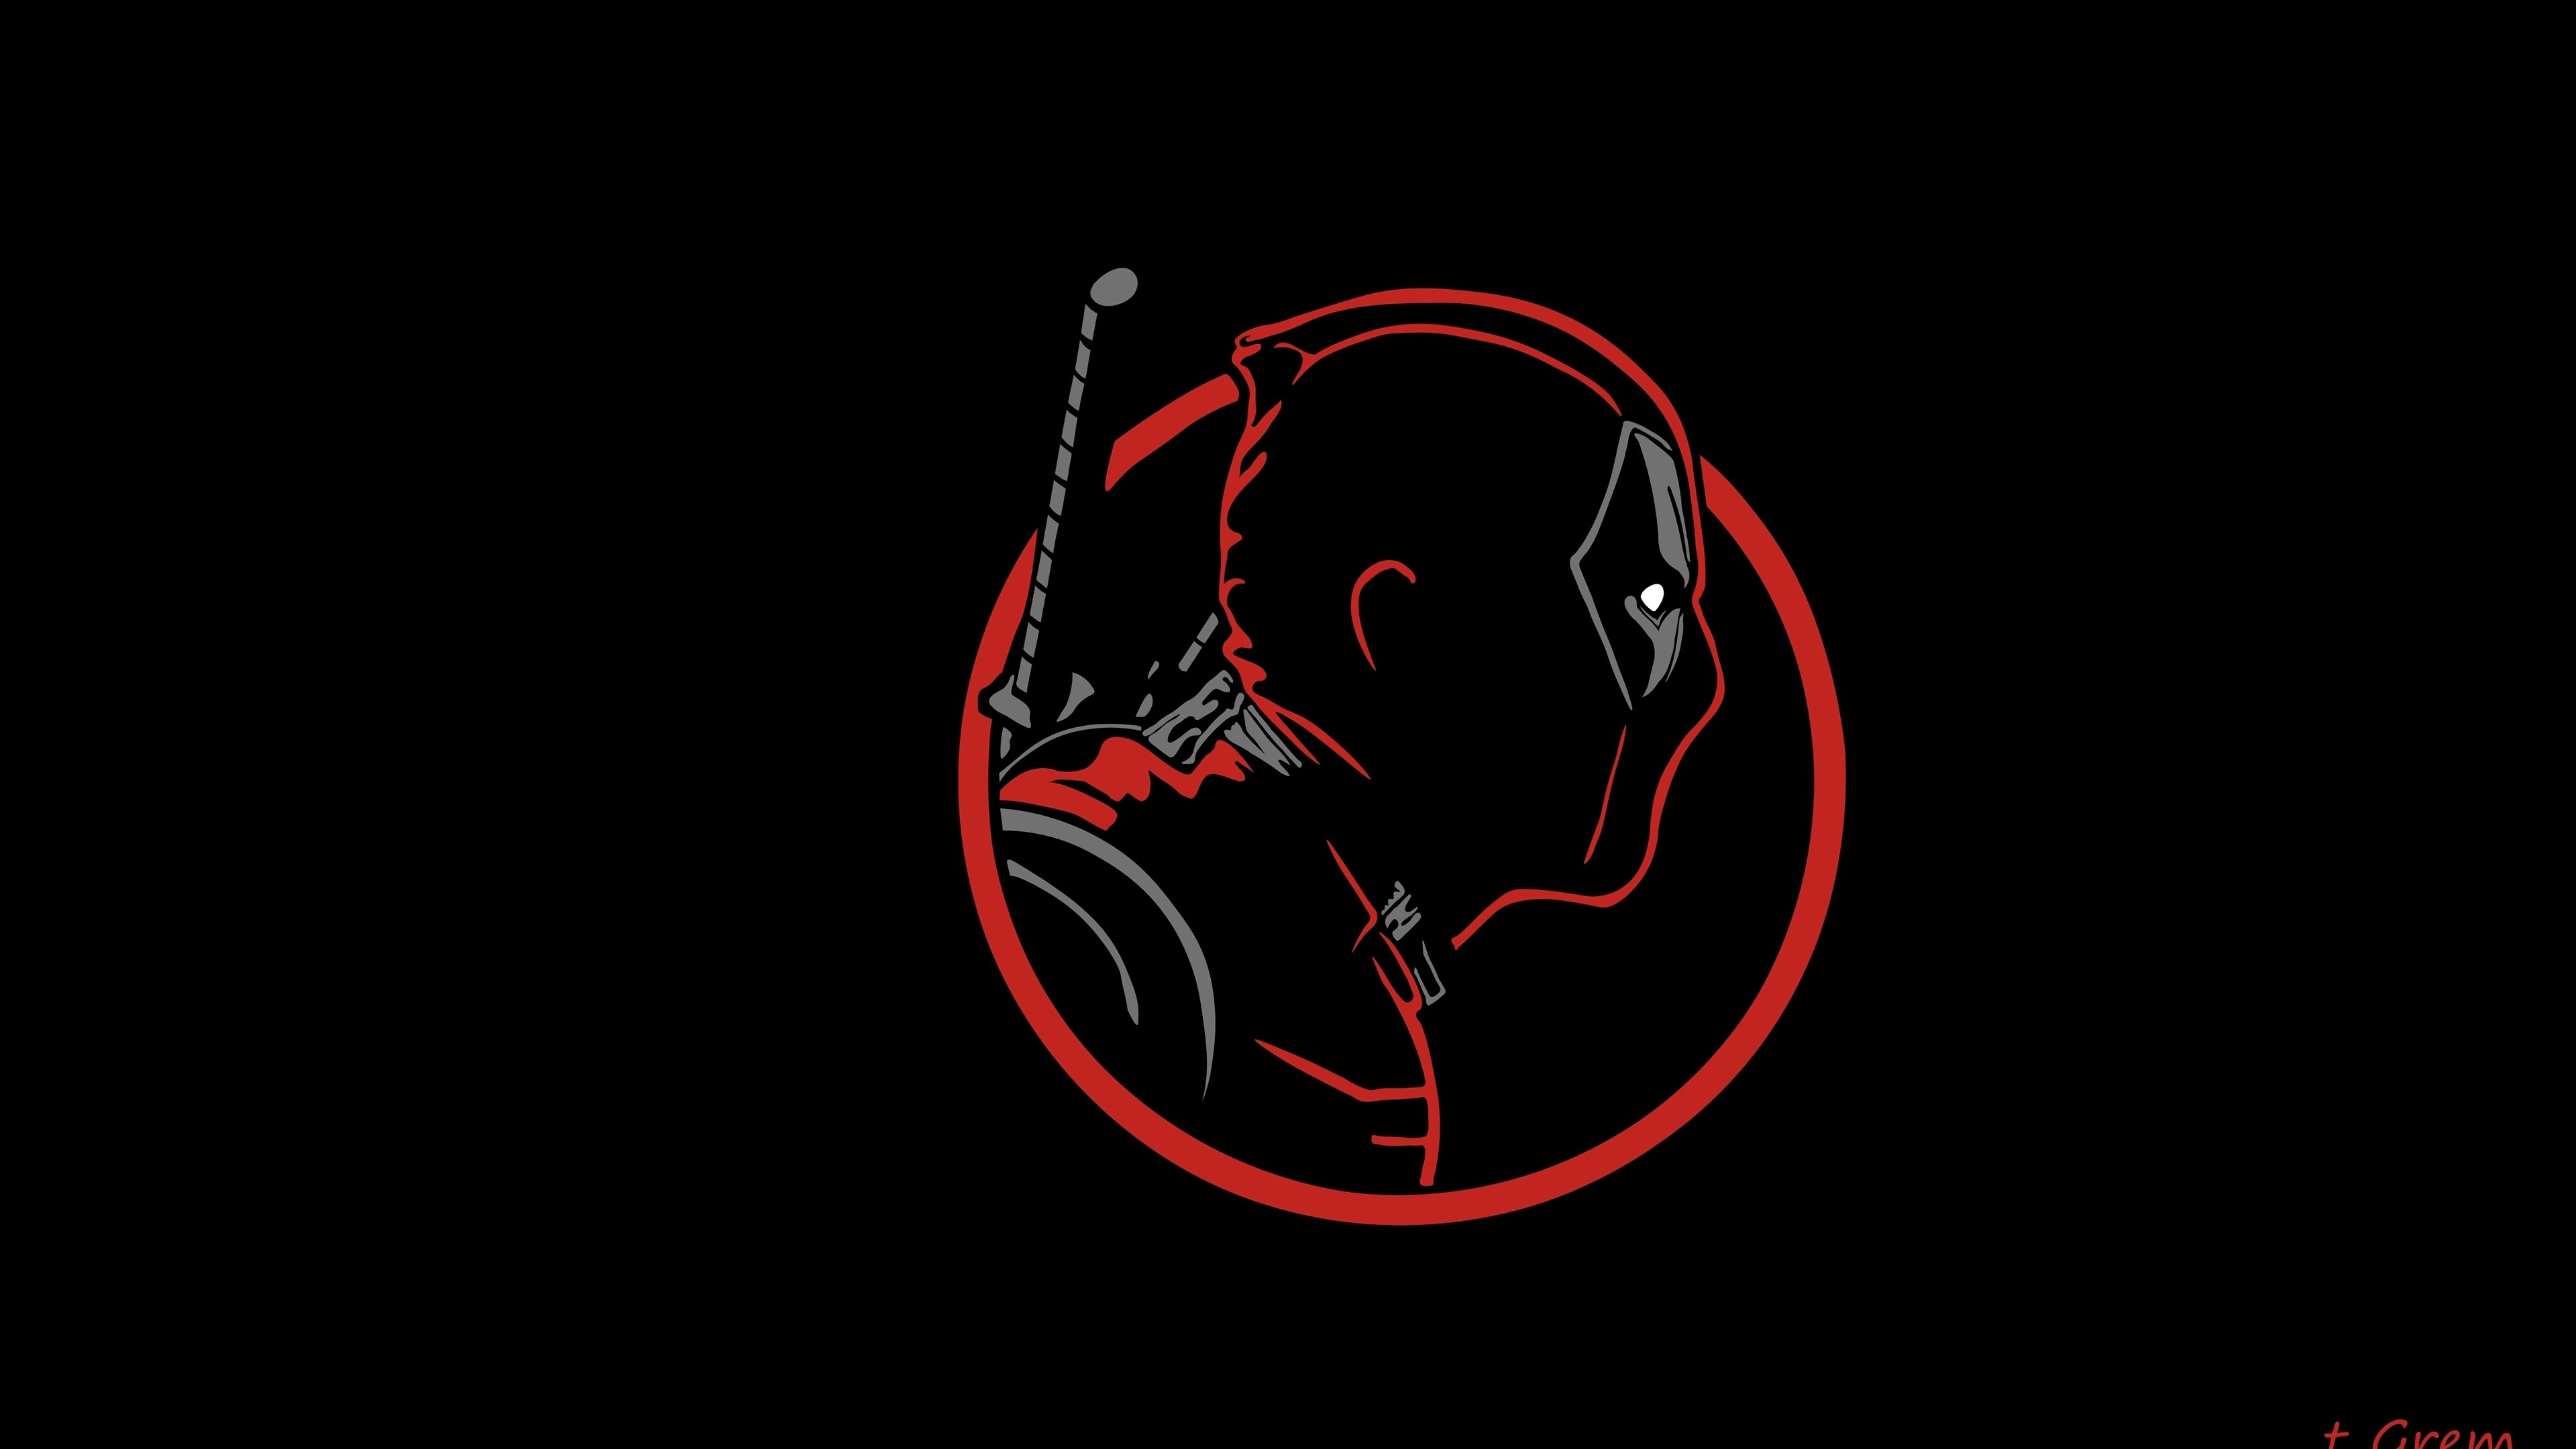 Wallpaper 4k Deadpool Minimal 4k 4k wallpapers artist wallpapers 3840x2160